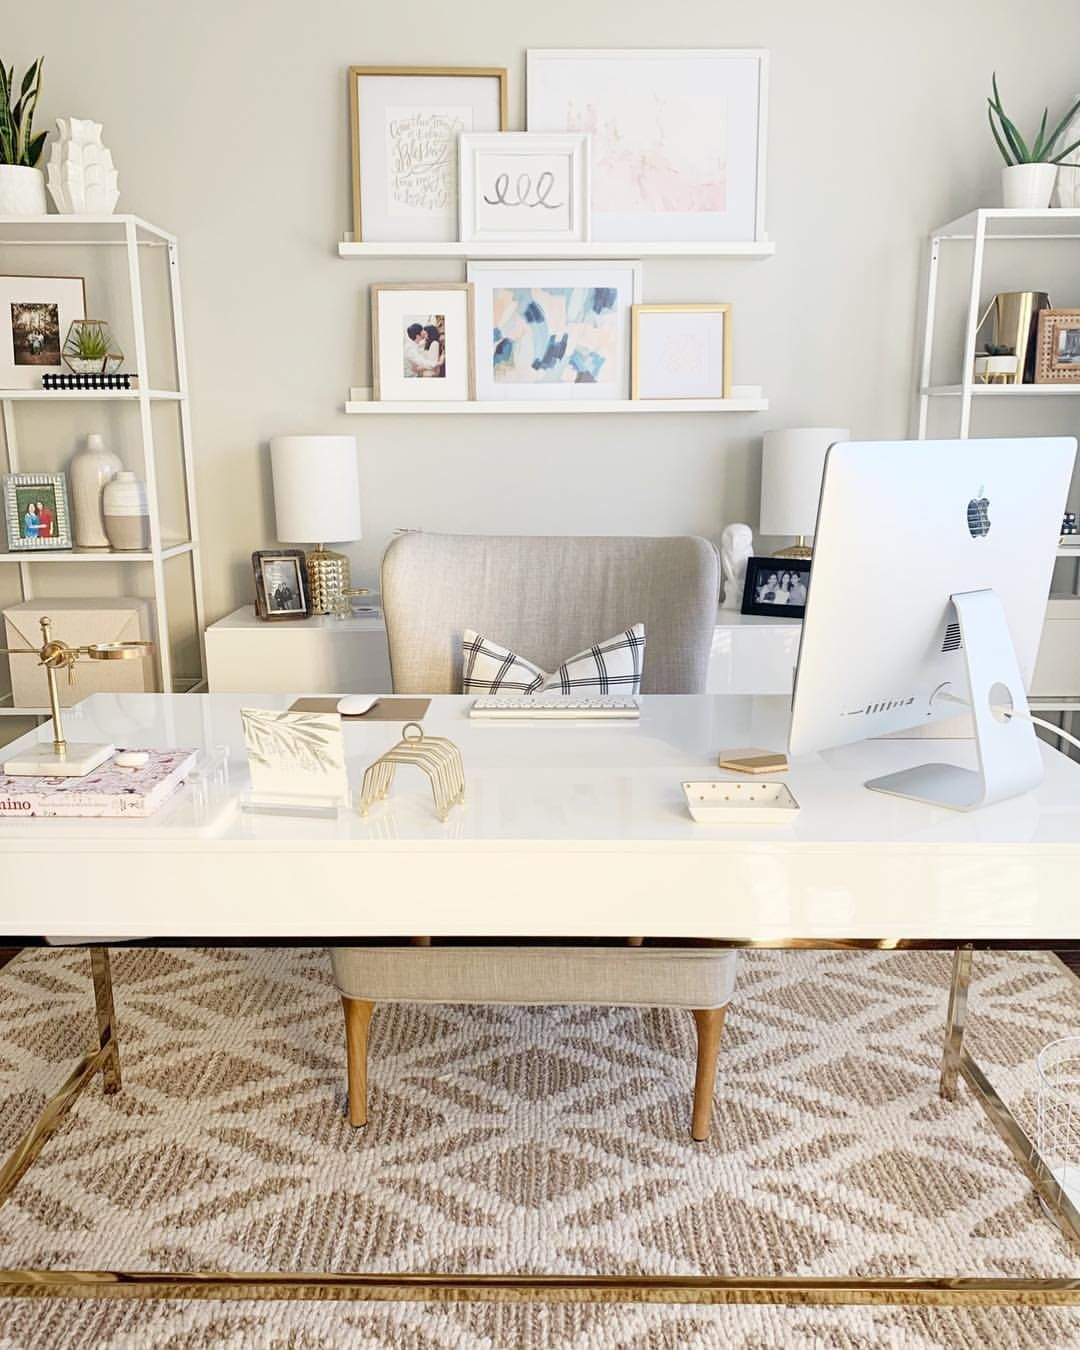 Create A Home Office That Works For You When You Need A Serious Workspace Choose A Layout Furnishings Home Office Design Cozy Home Office Home Office Setup